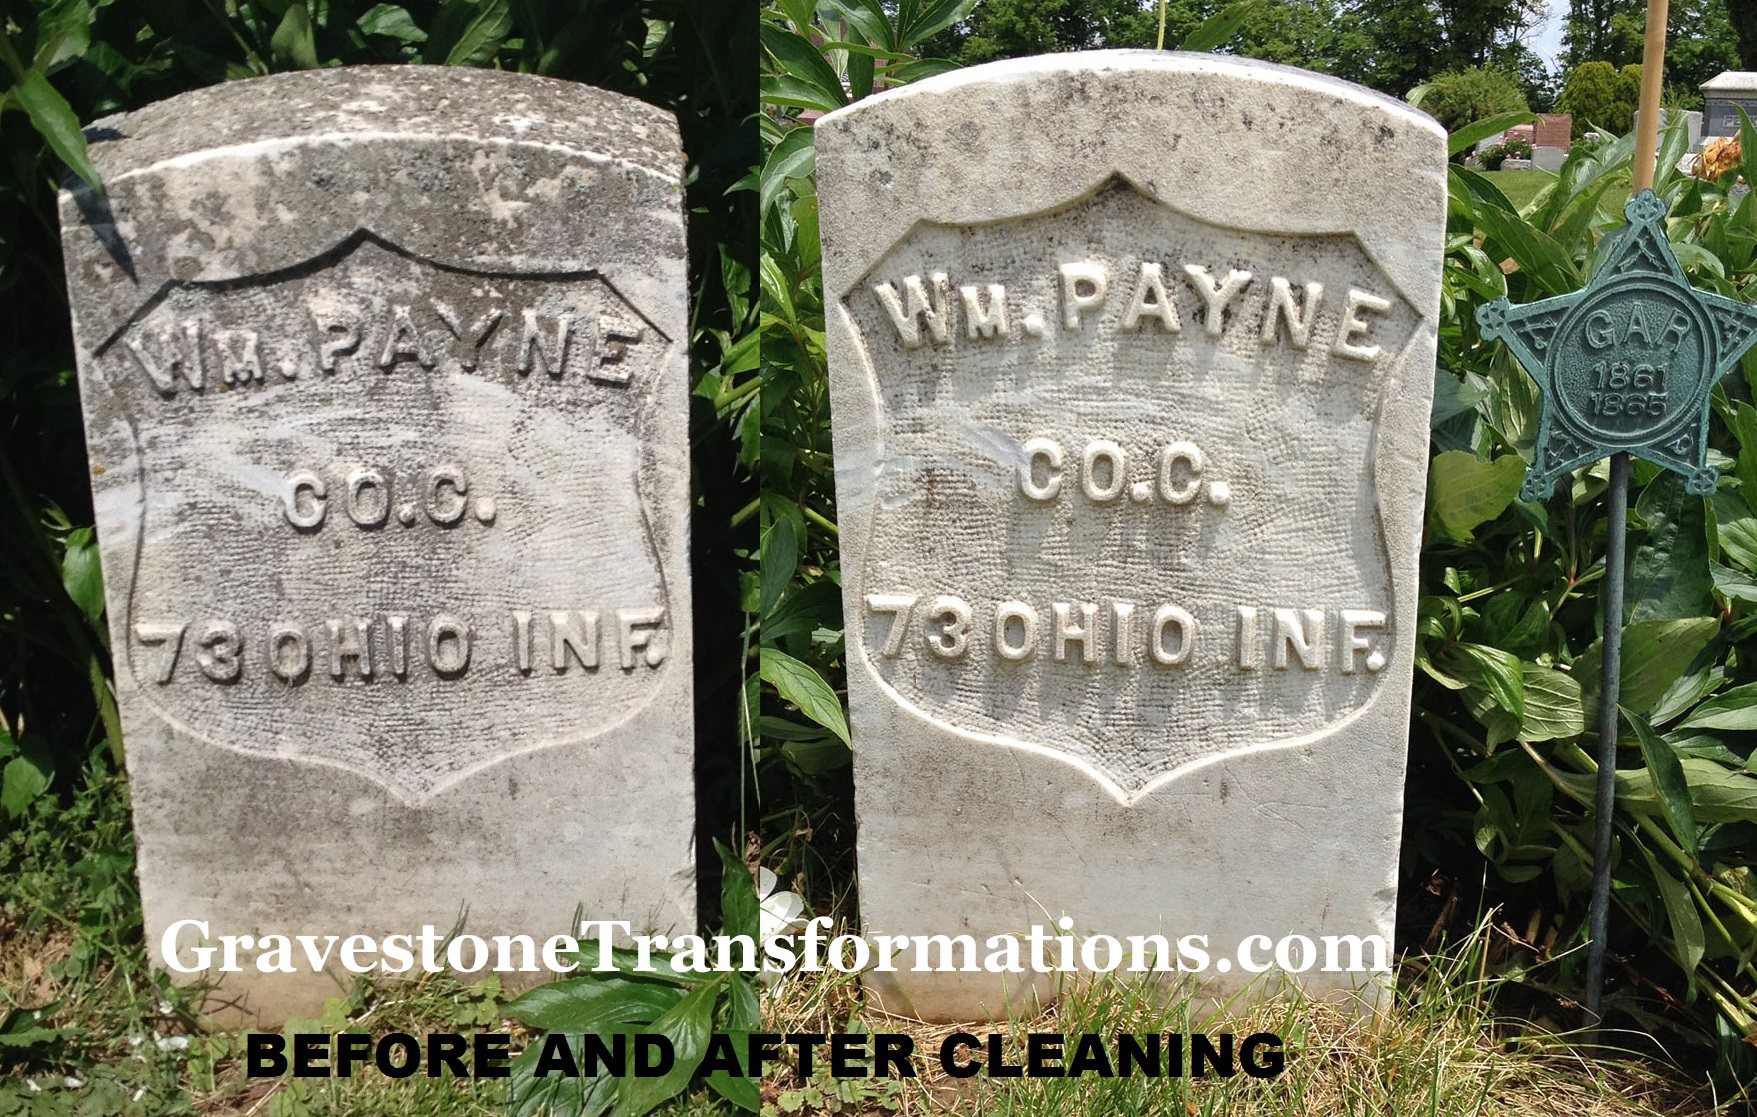 William Payne - Browns Chapel Cemetery , Ross County Ohio - before cleaning and 8 days after cleaning